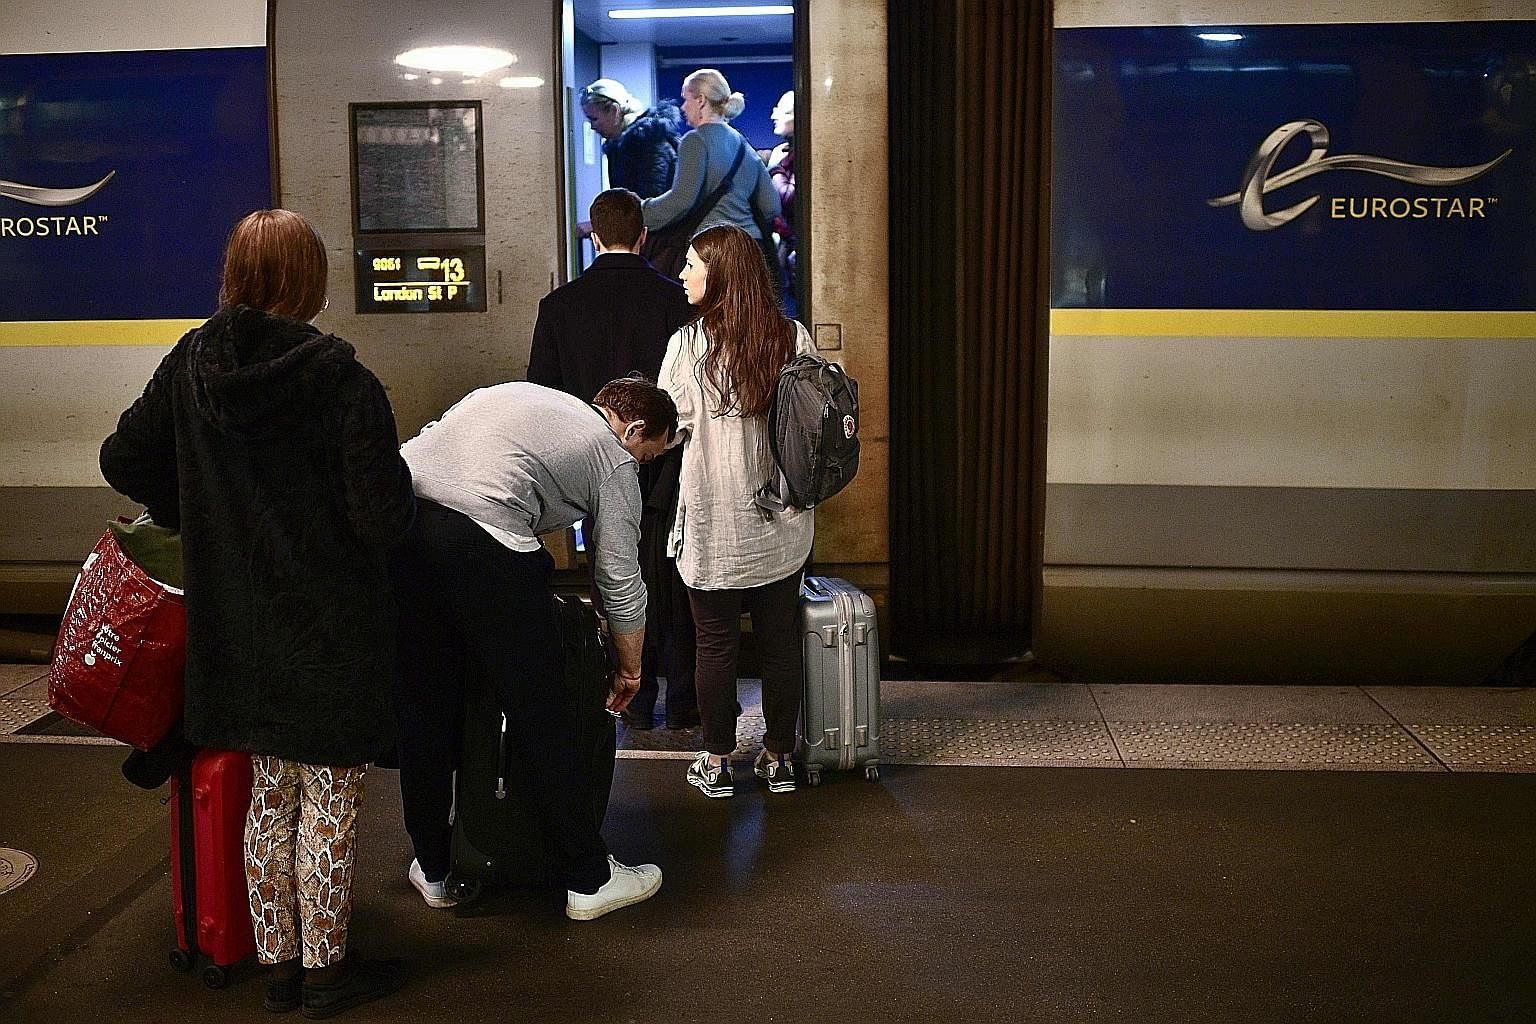 Passengers boarding the final Eurostar train before Brexit at Gare du Nord station in Paris on Friday. The Eurostar trains started running in 1994 and ply between Paris and London through the Channel Tunnel in less than 2½ hours.